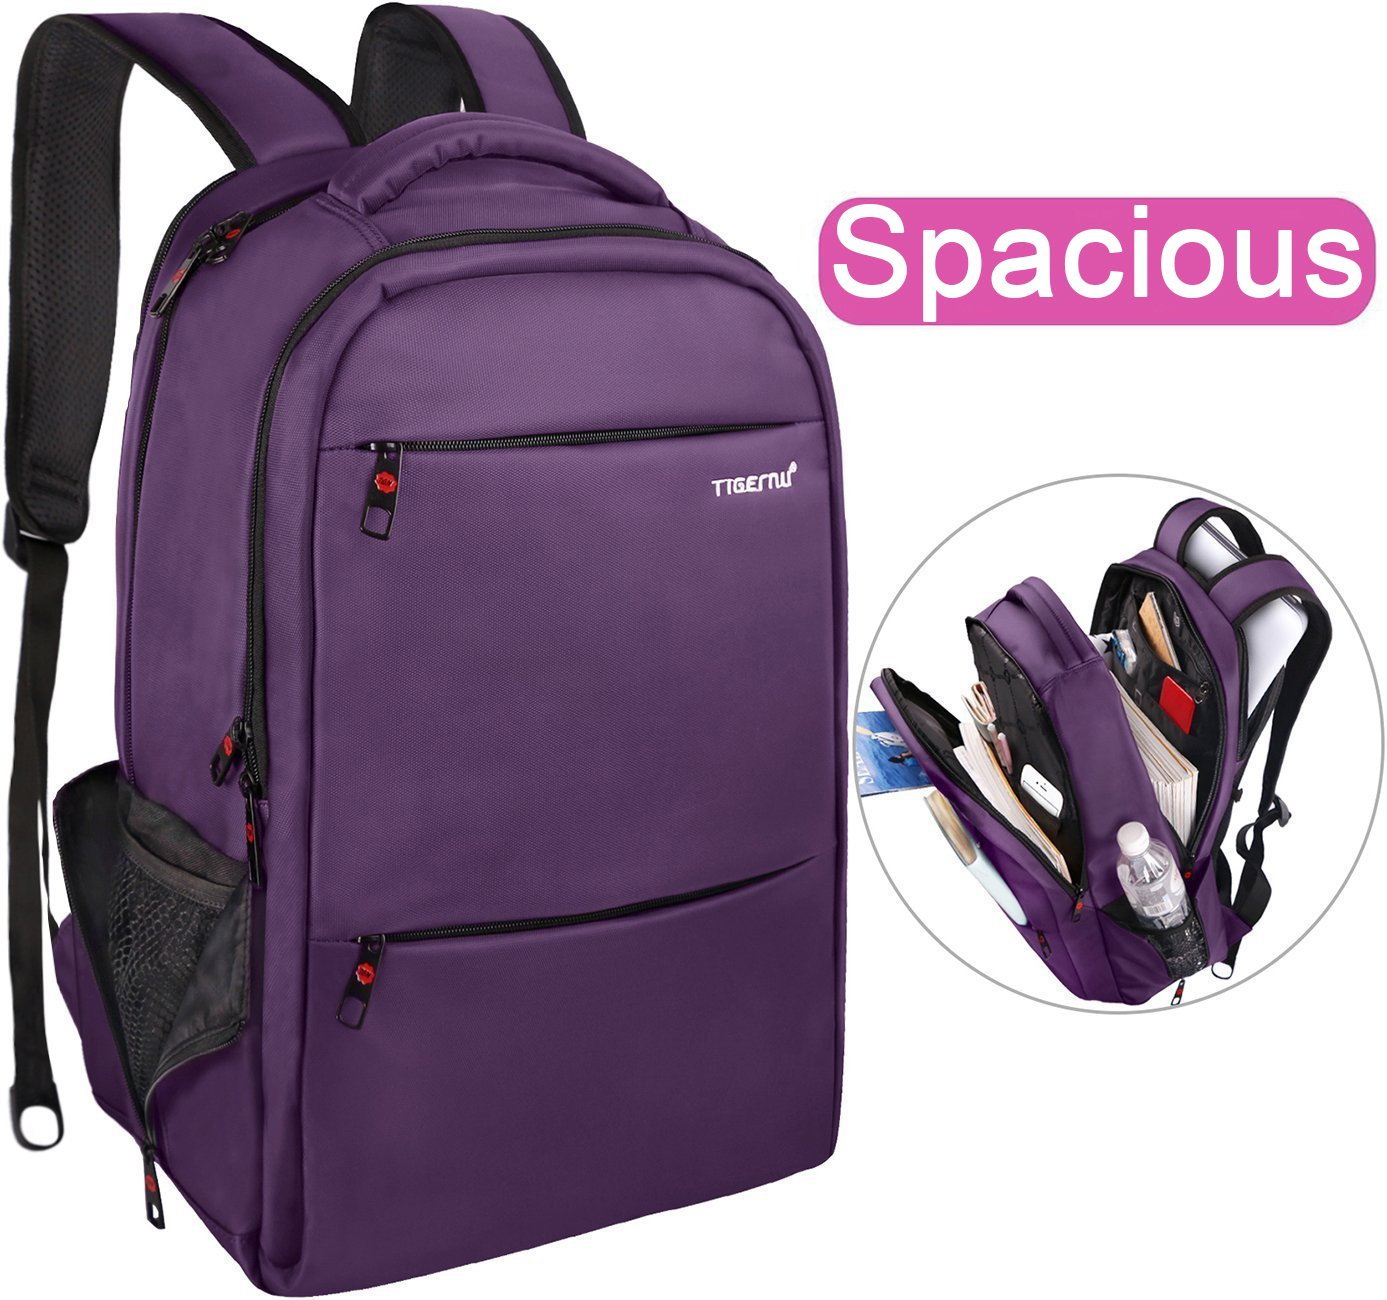 LAPACKER 15.6-17 inch Business Laptop Backpacks for Women Mens Water Resistant Laptop Travel Bag Lightweight College Students Notebook Computer Backpack - Purple Tigernu leather co. ltd KKpack10